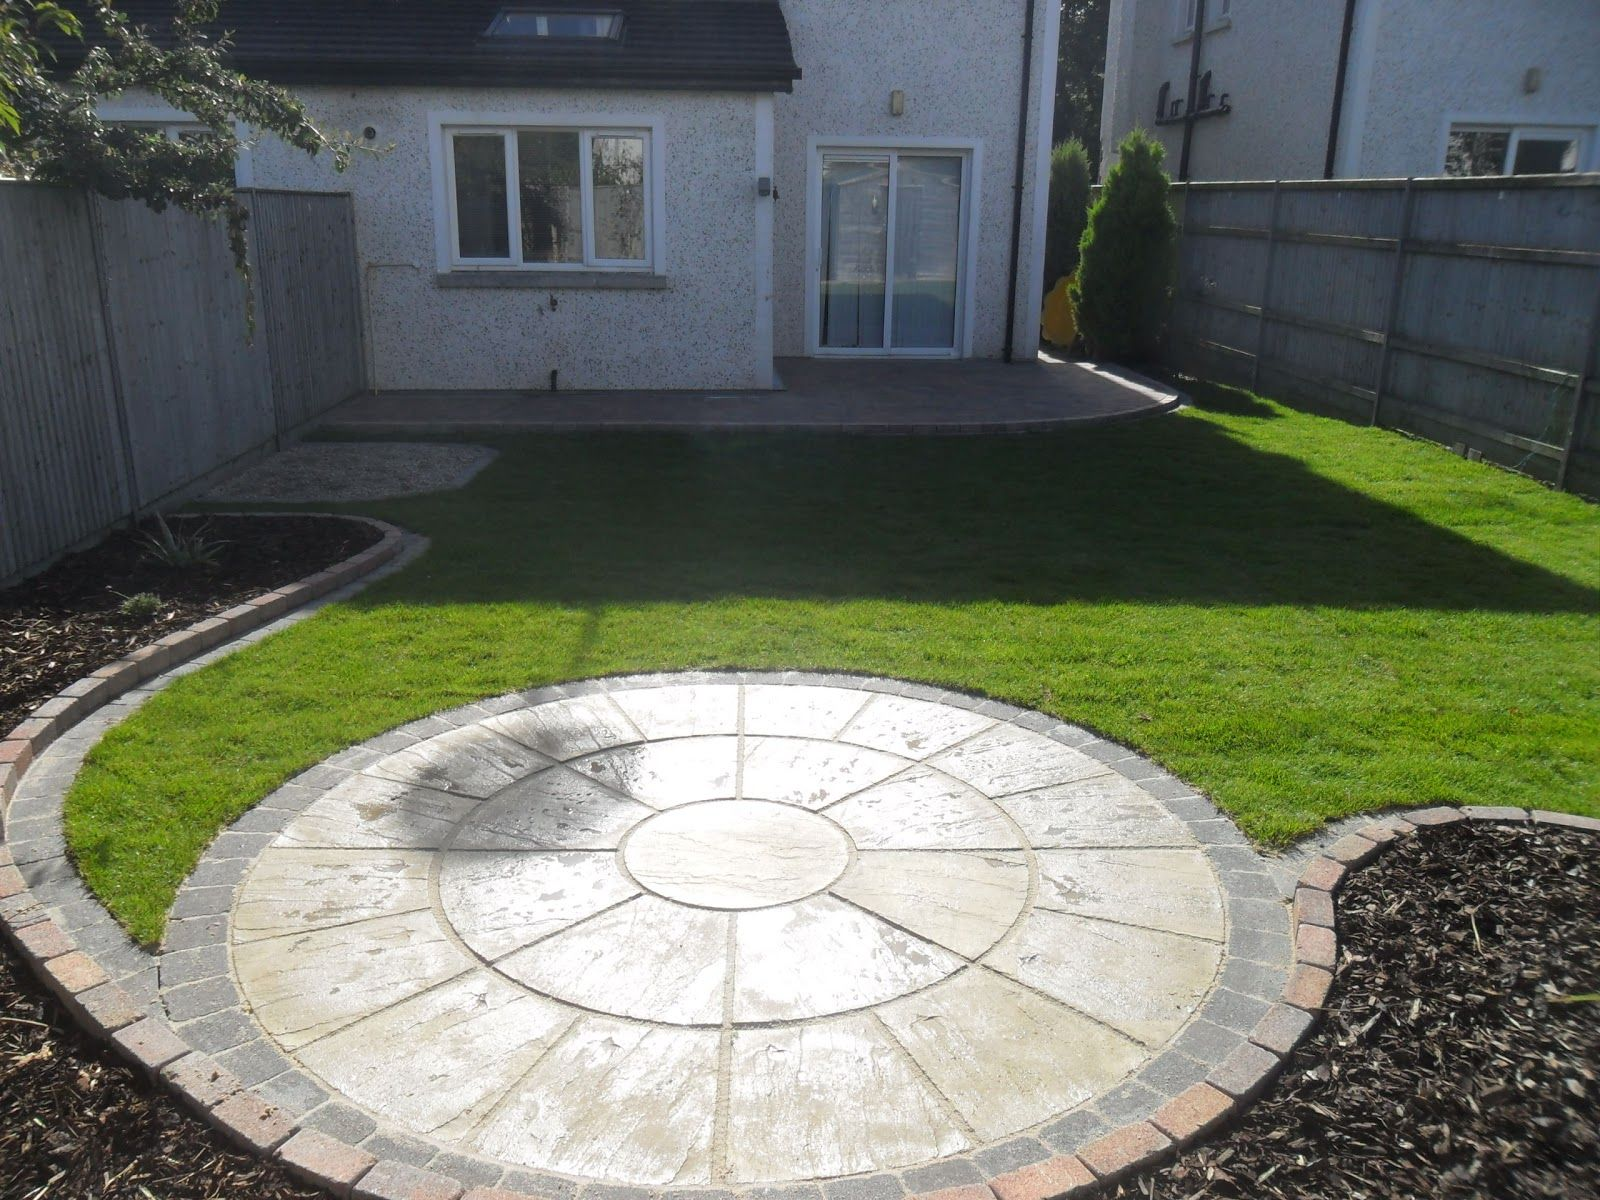 Patio Areas Circular And Raised Garden Design Roschoill Drogheda Co